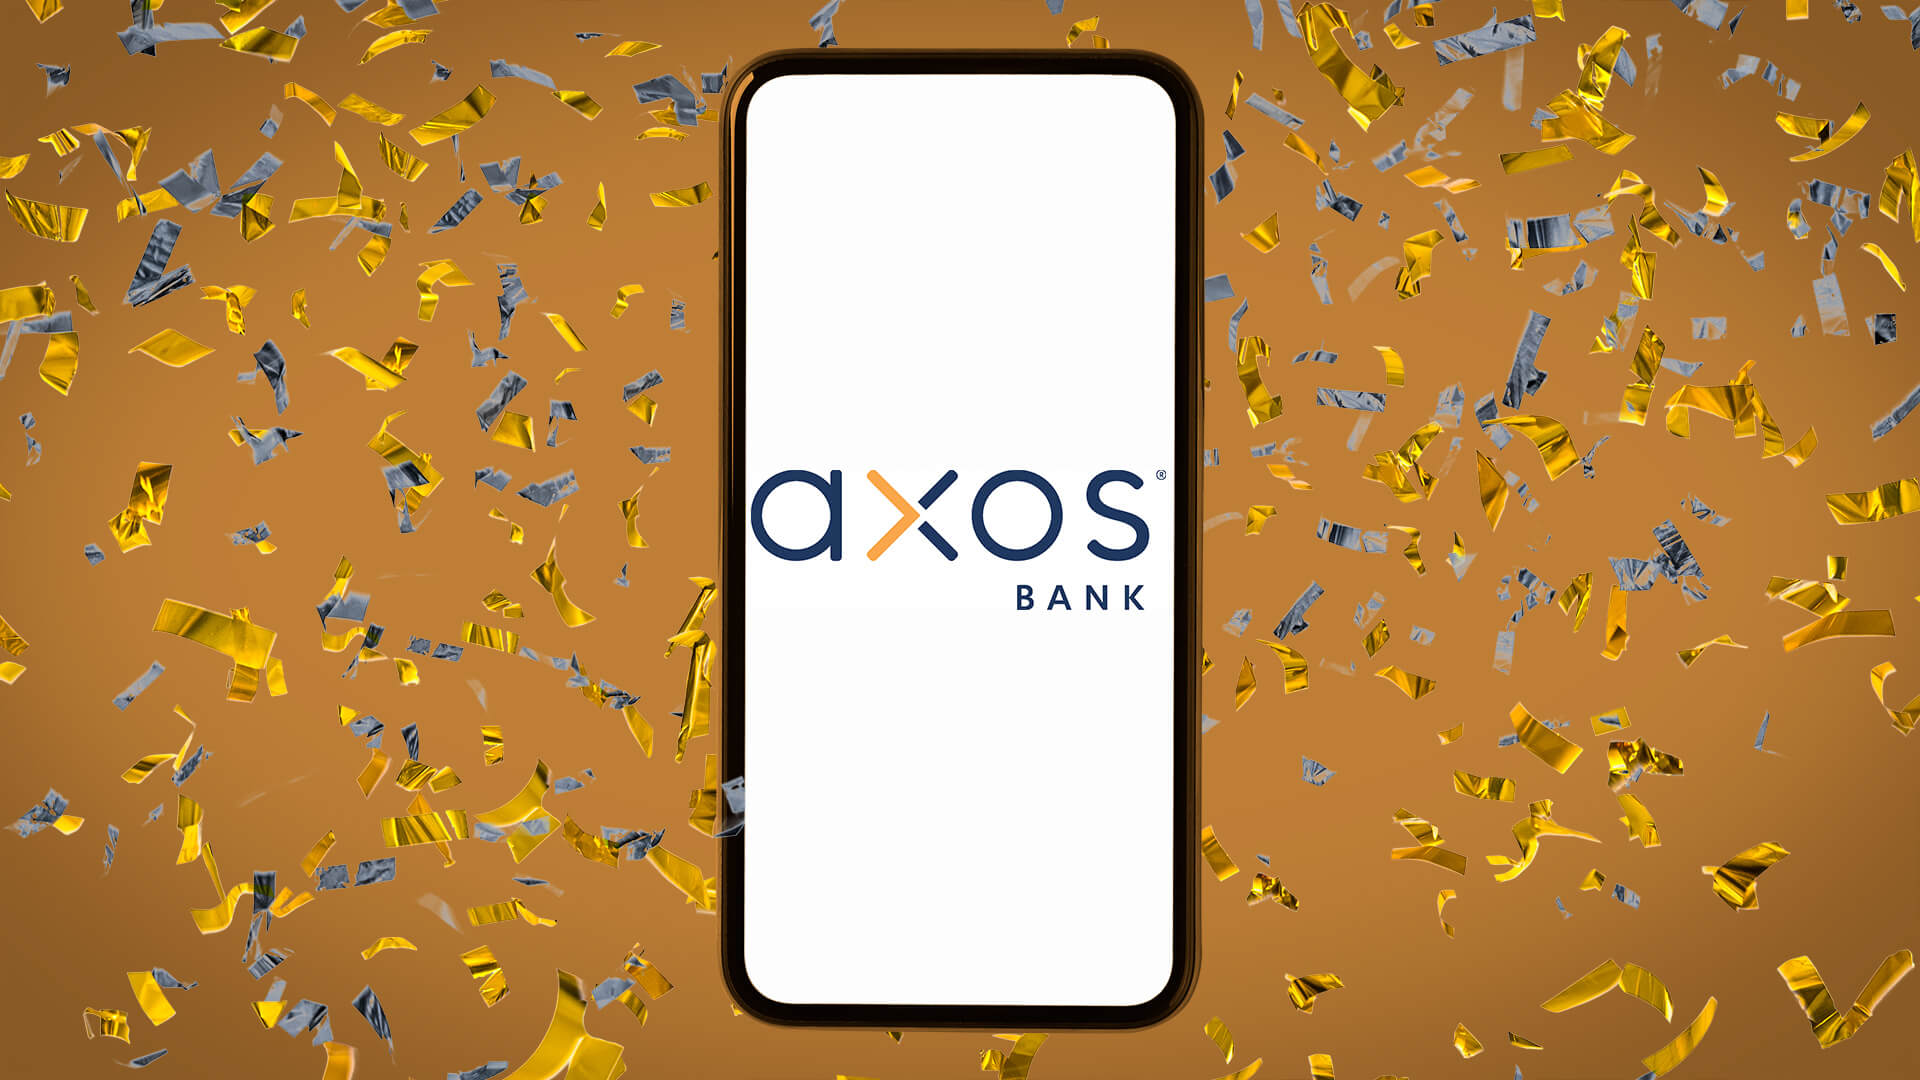 Axos bank promotions